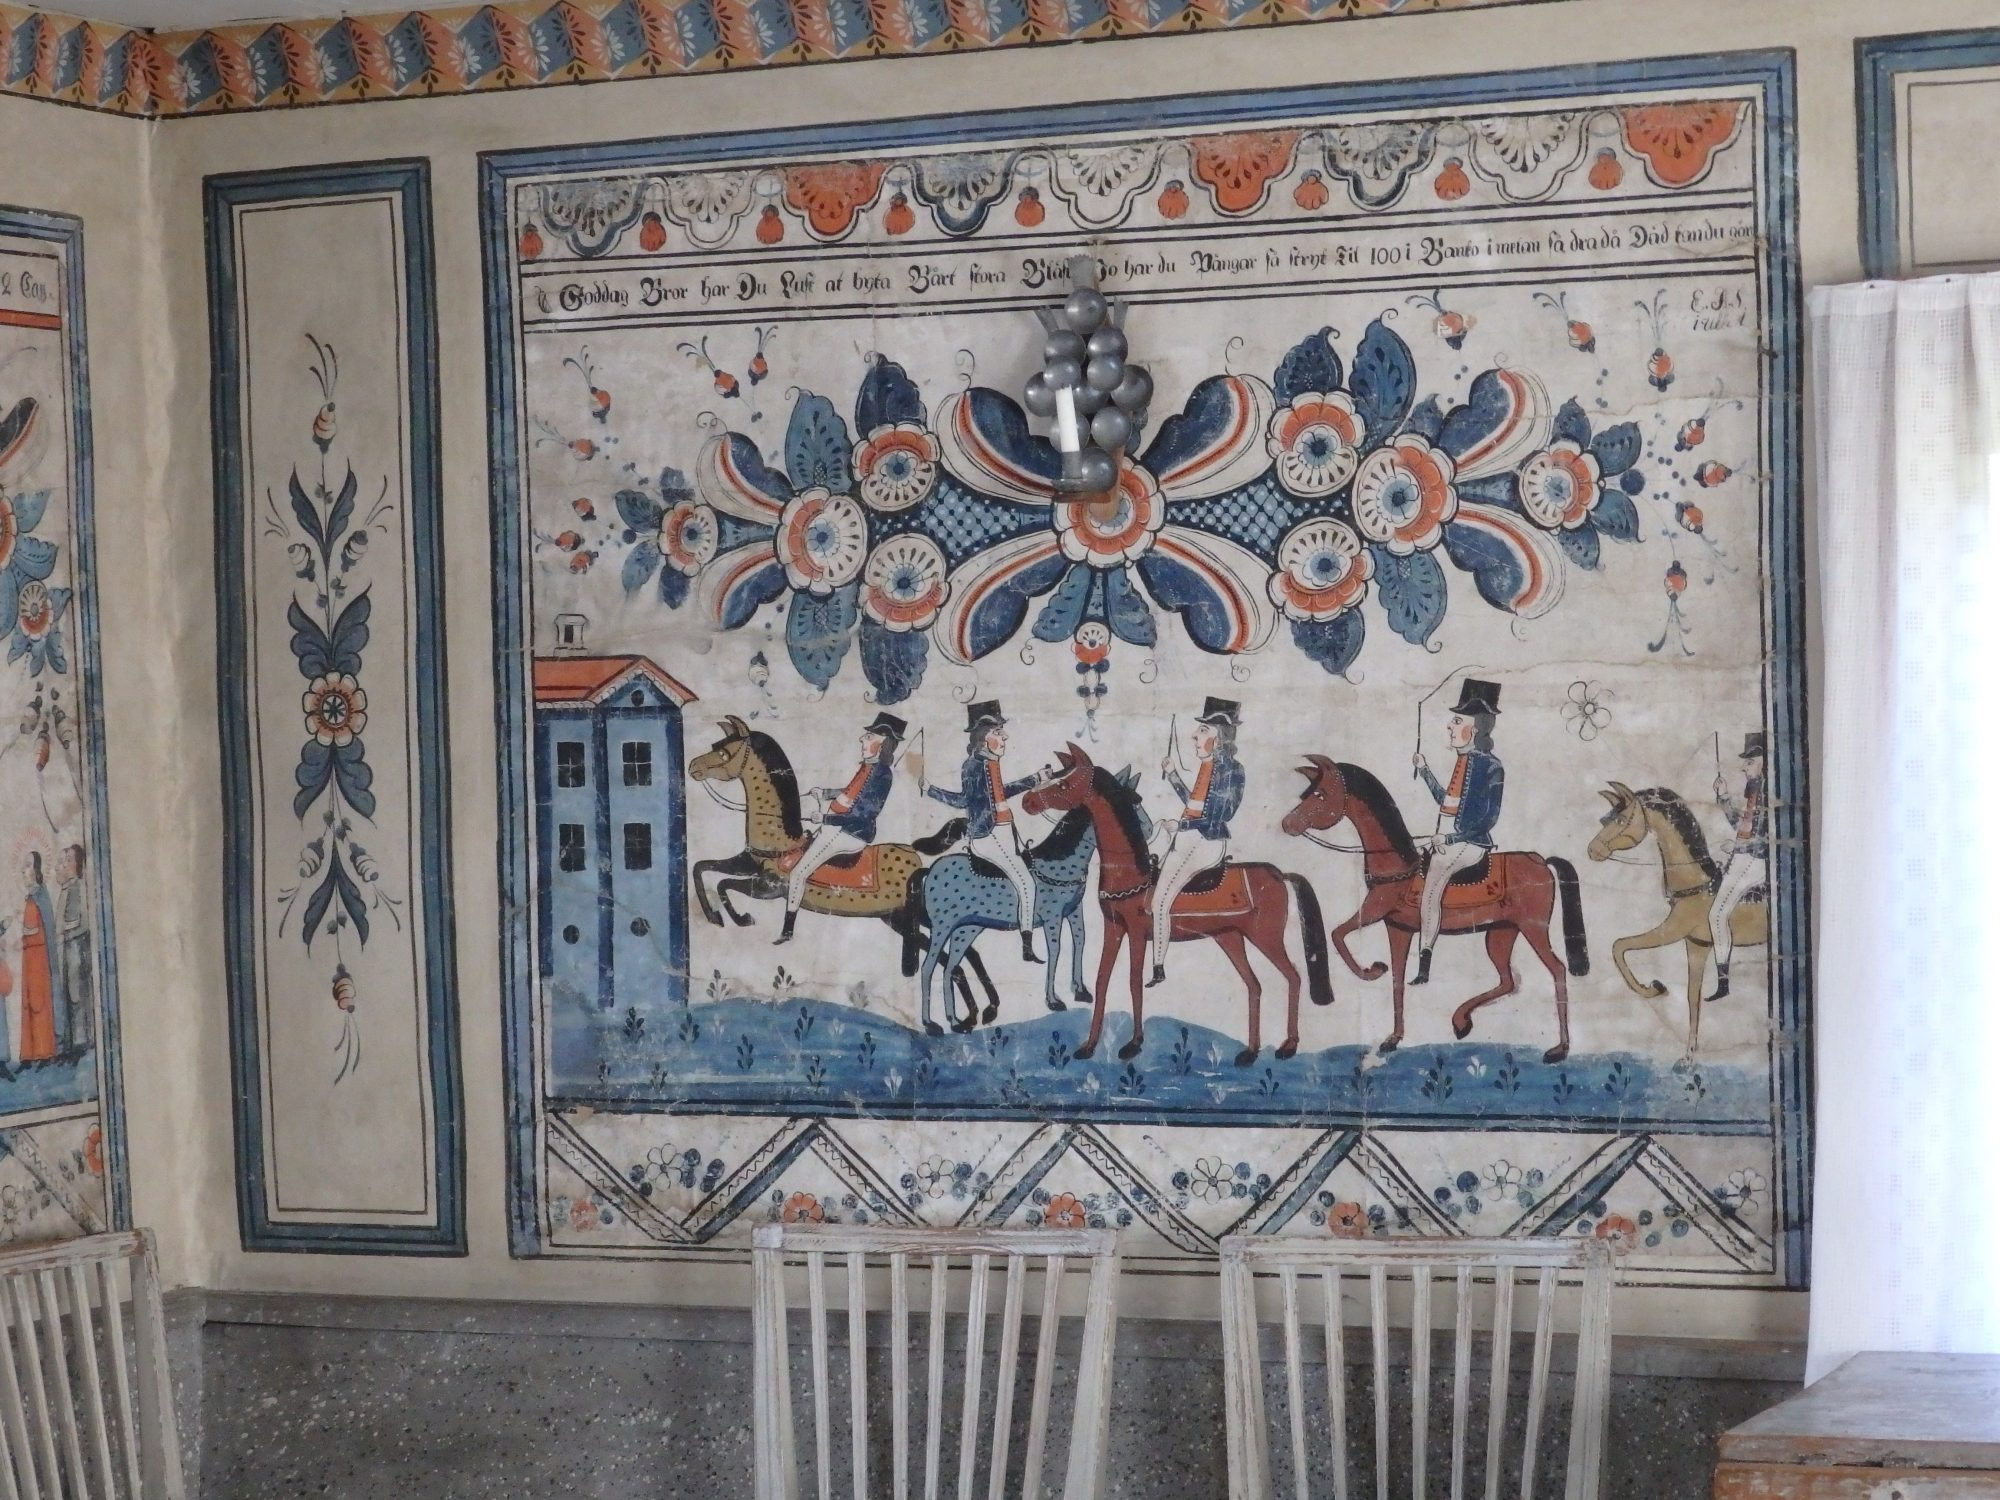 Many of the houses in Skansen, especially the ones from rural areas, still have the original wall paintings.